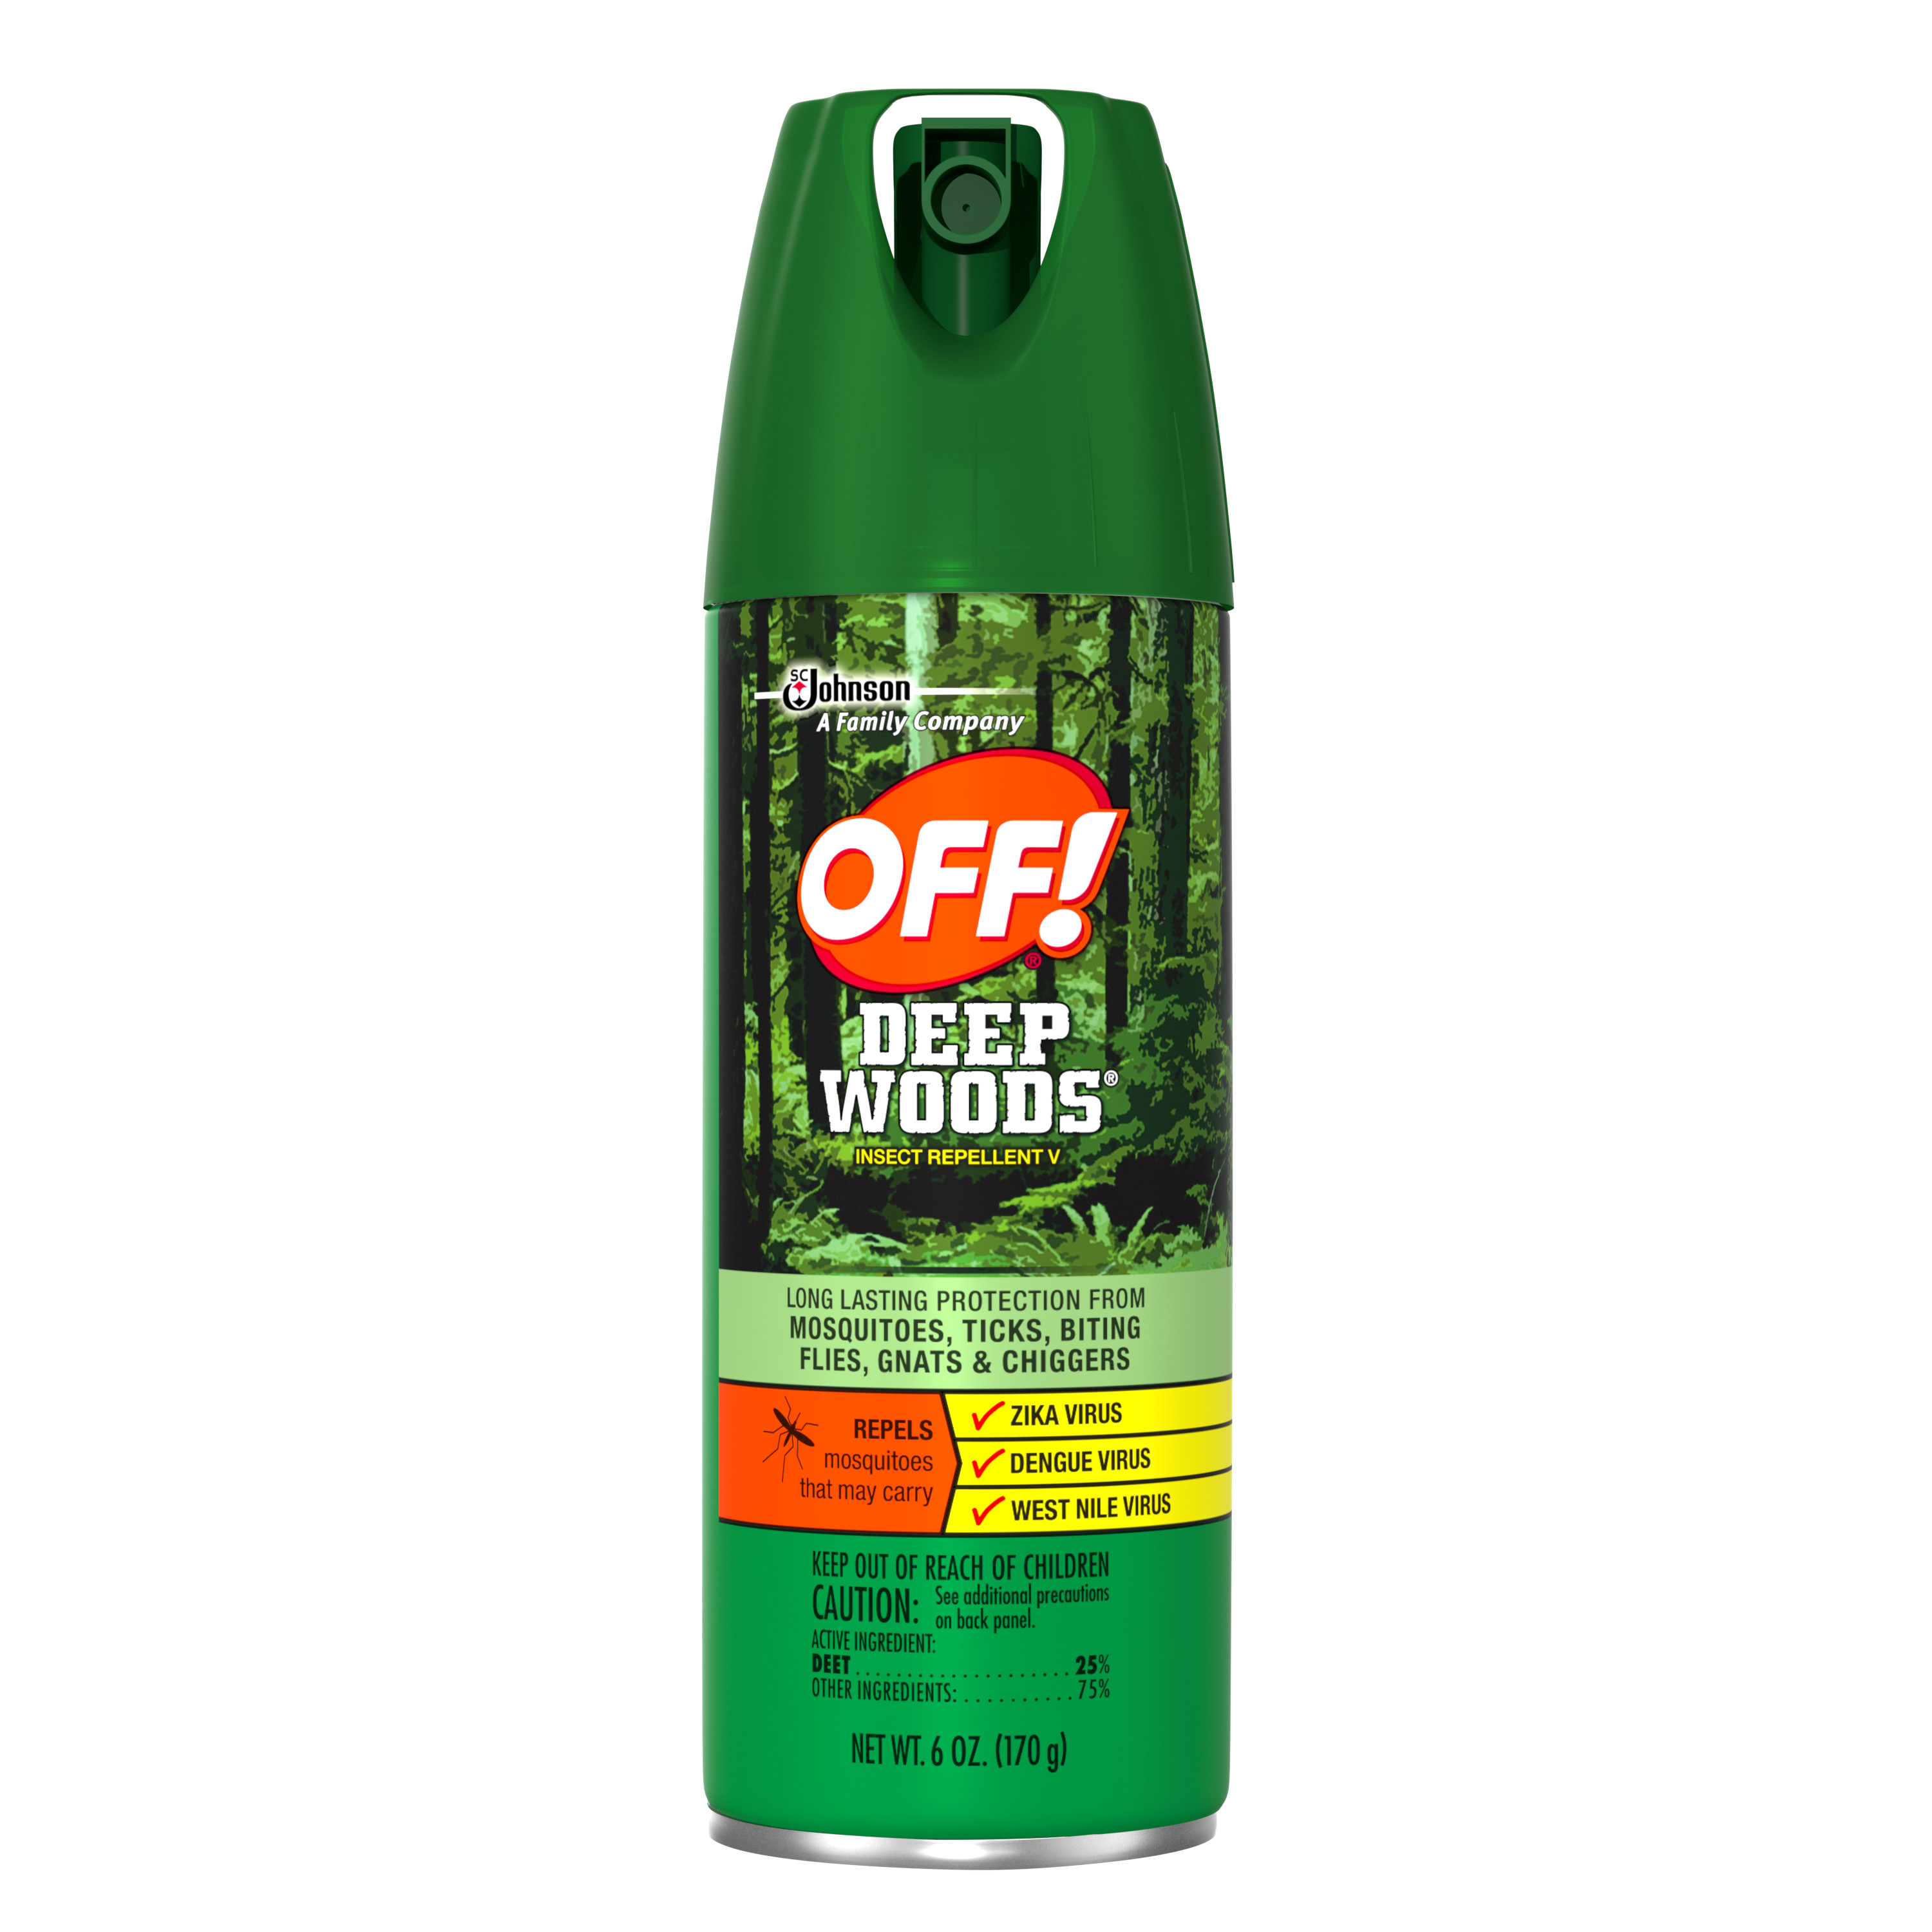 OFF! Deep Woods Insect Repellent, 6oz